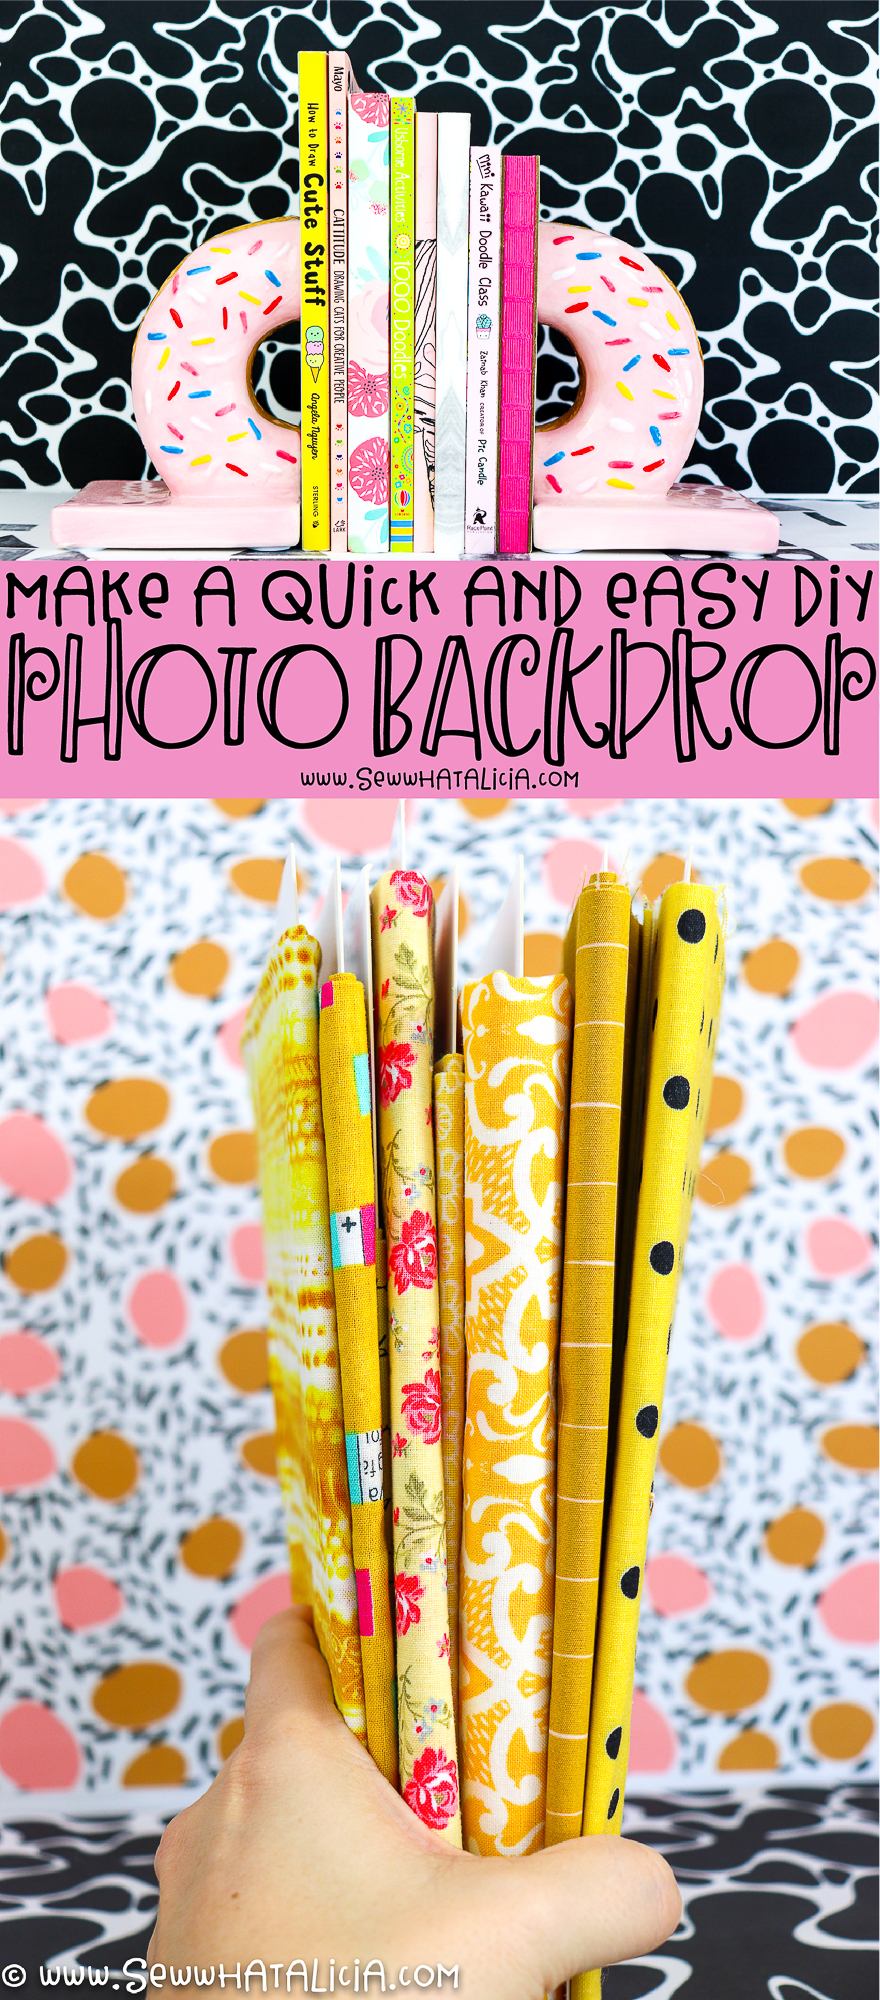 black and white background with books and pink donut book ends, text overlay reading make a quick and easy diy photo backdrop, yellow fabrics with blurred out background